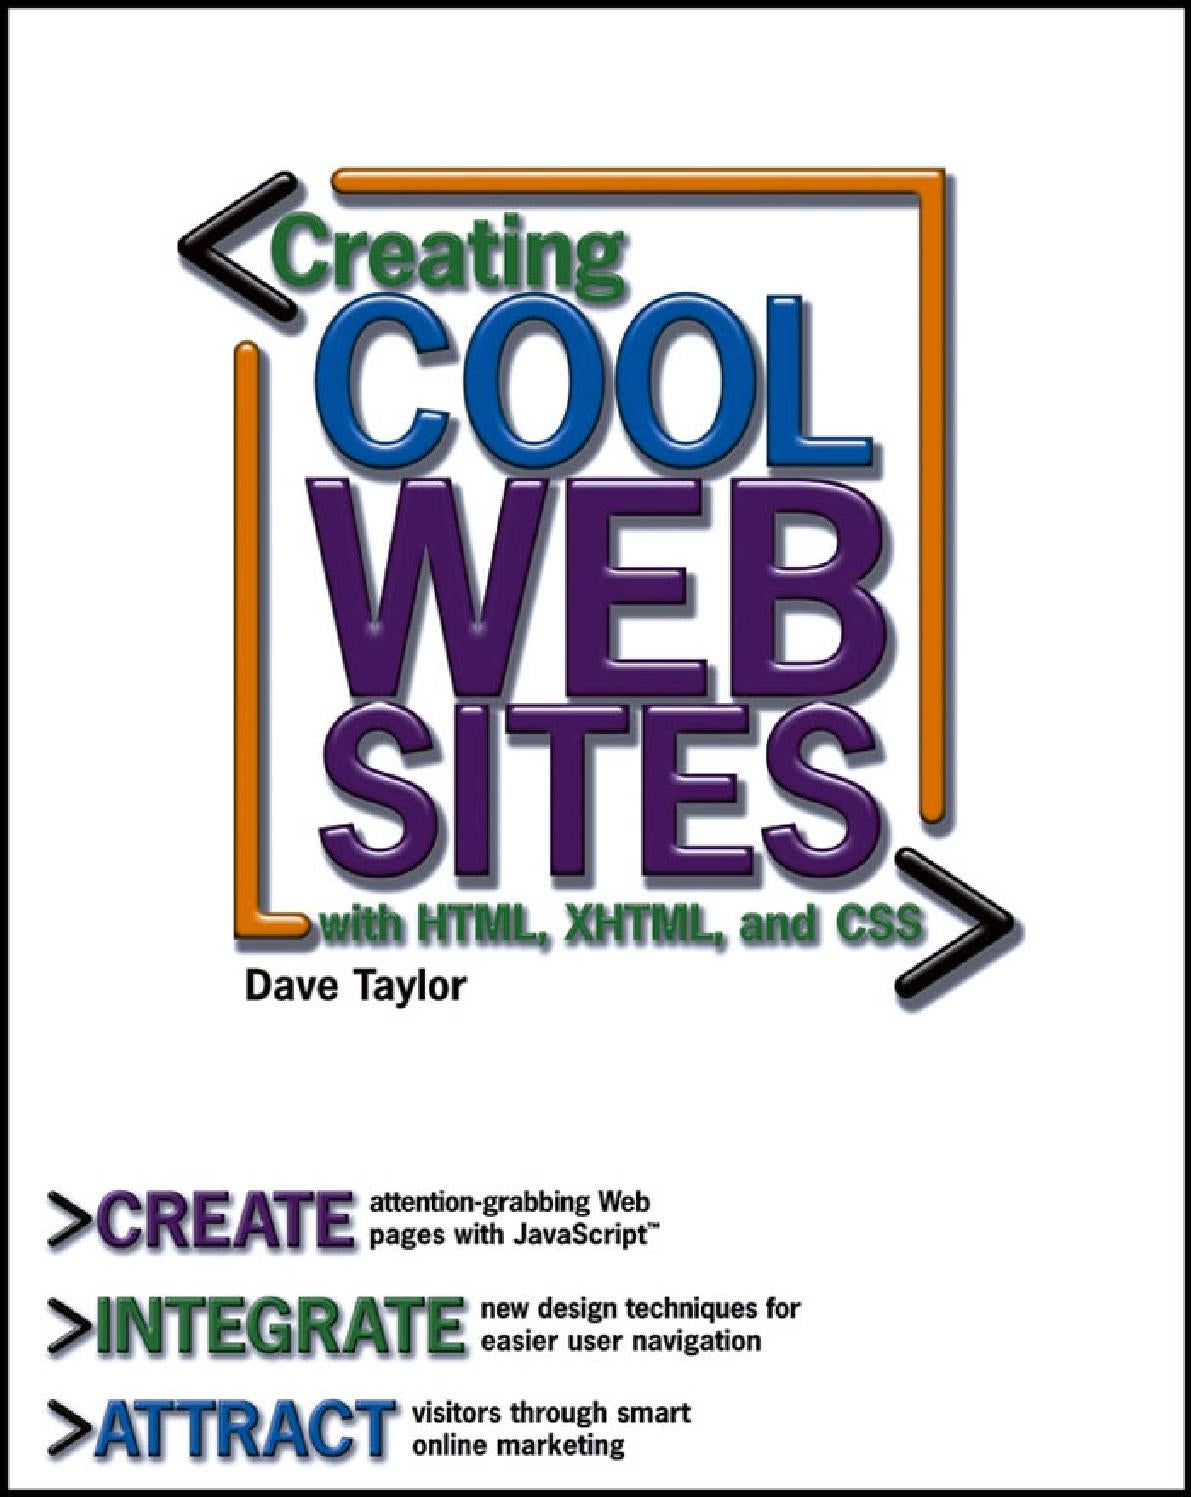 Web design creating cool web sites with html, xhtml, and css by Chu ...